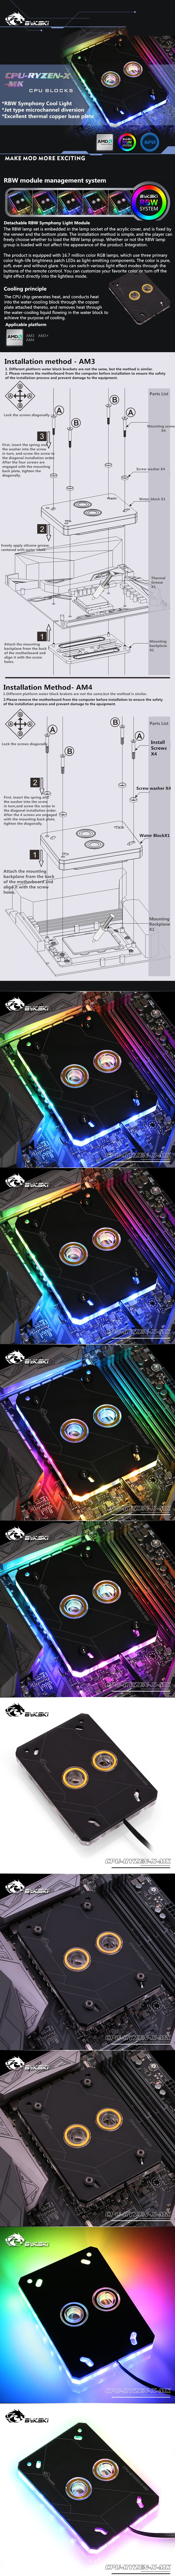 A large marketing image providing additional information about the product Bykski Ryzen X Acrylic RBW AM4/sTR4 CPU Waterblock - Additional alt info not provided